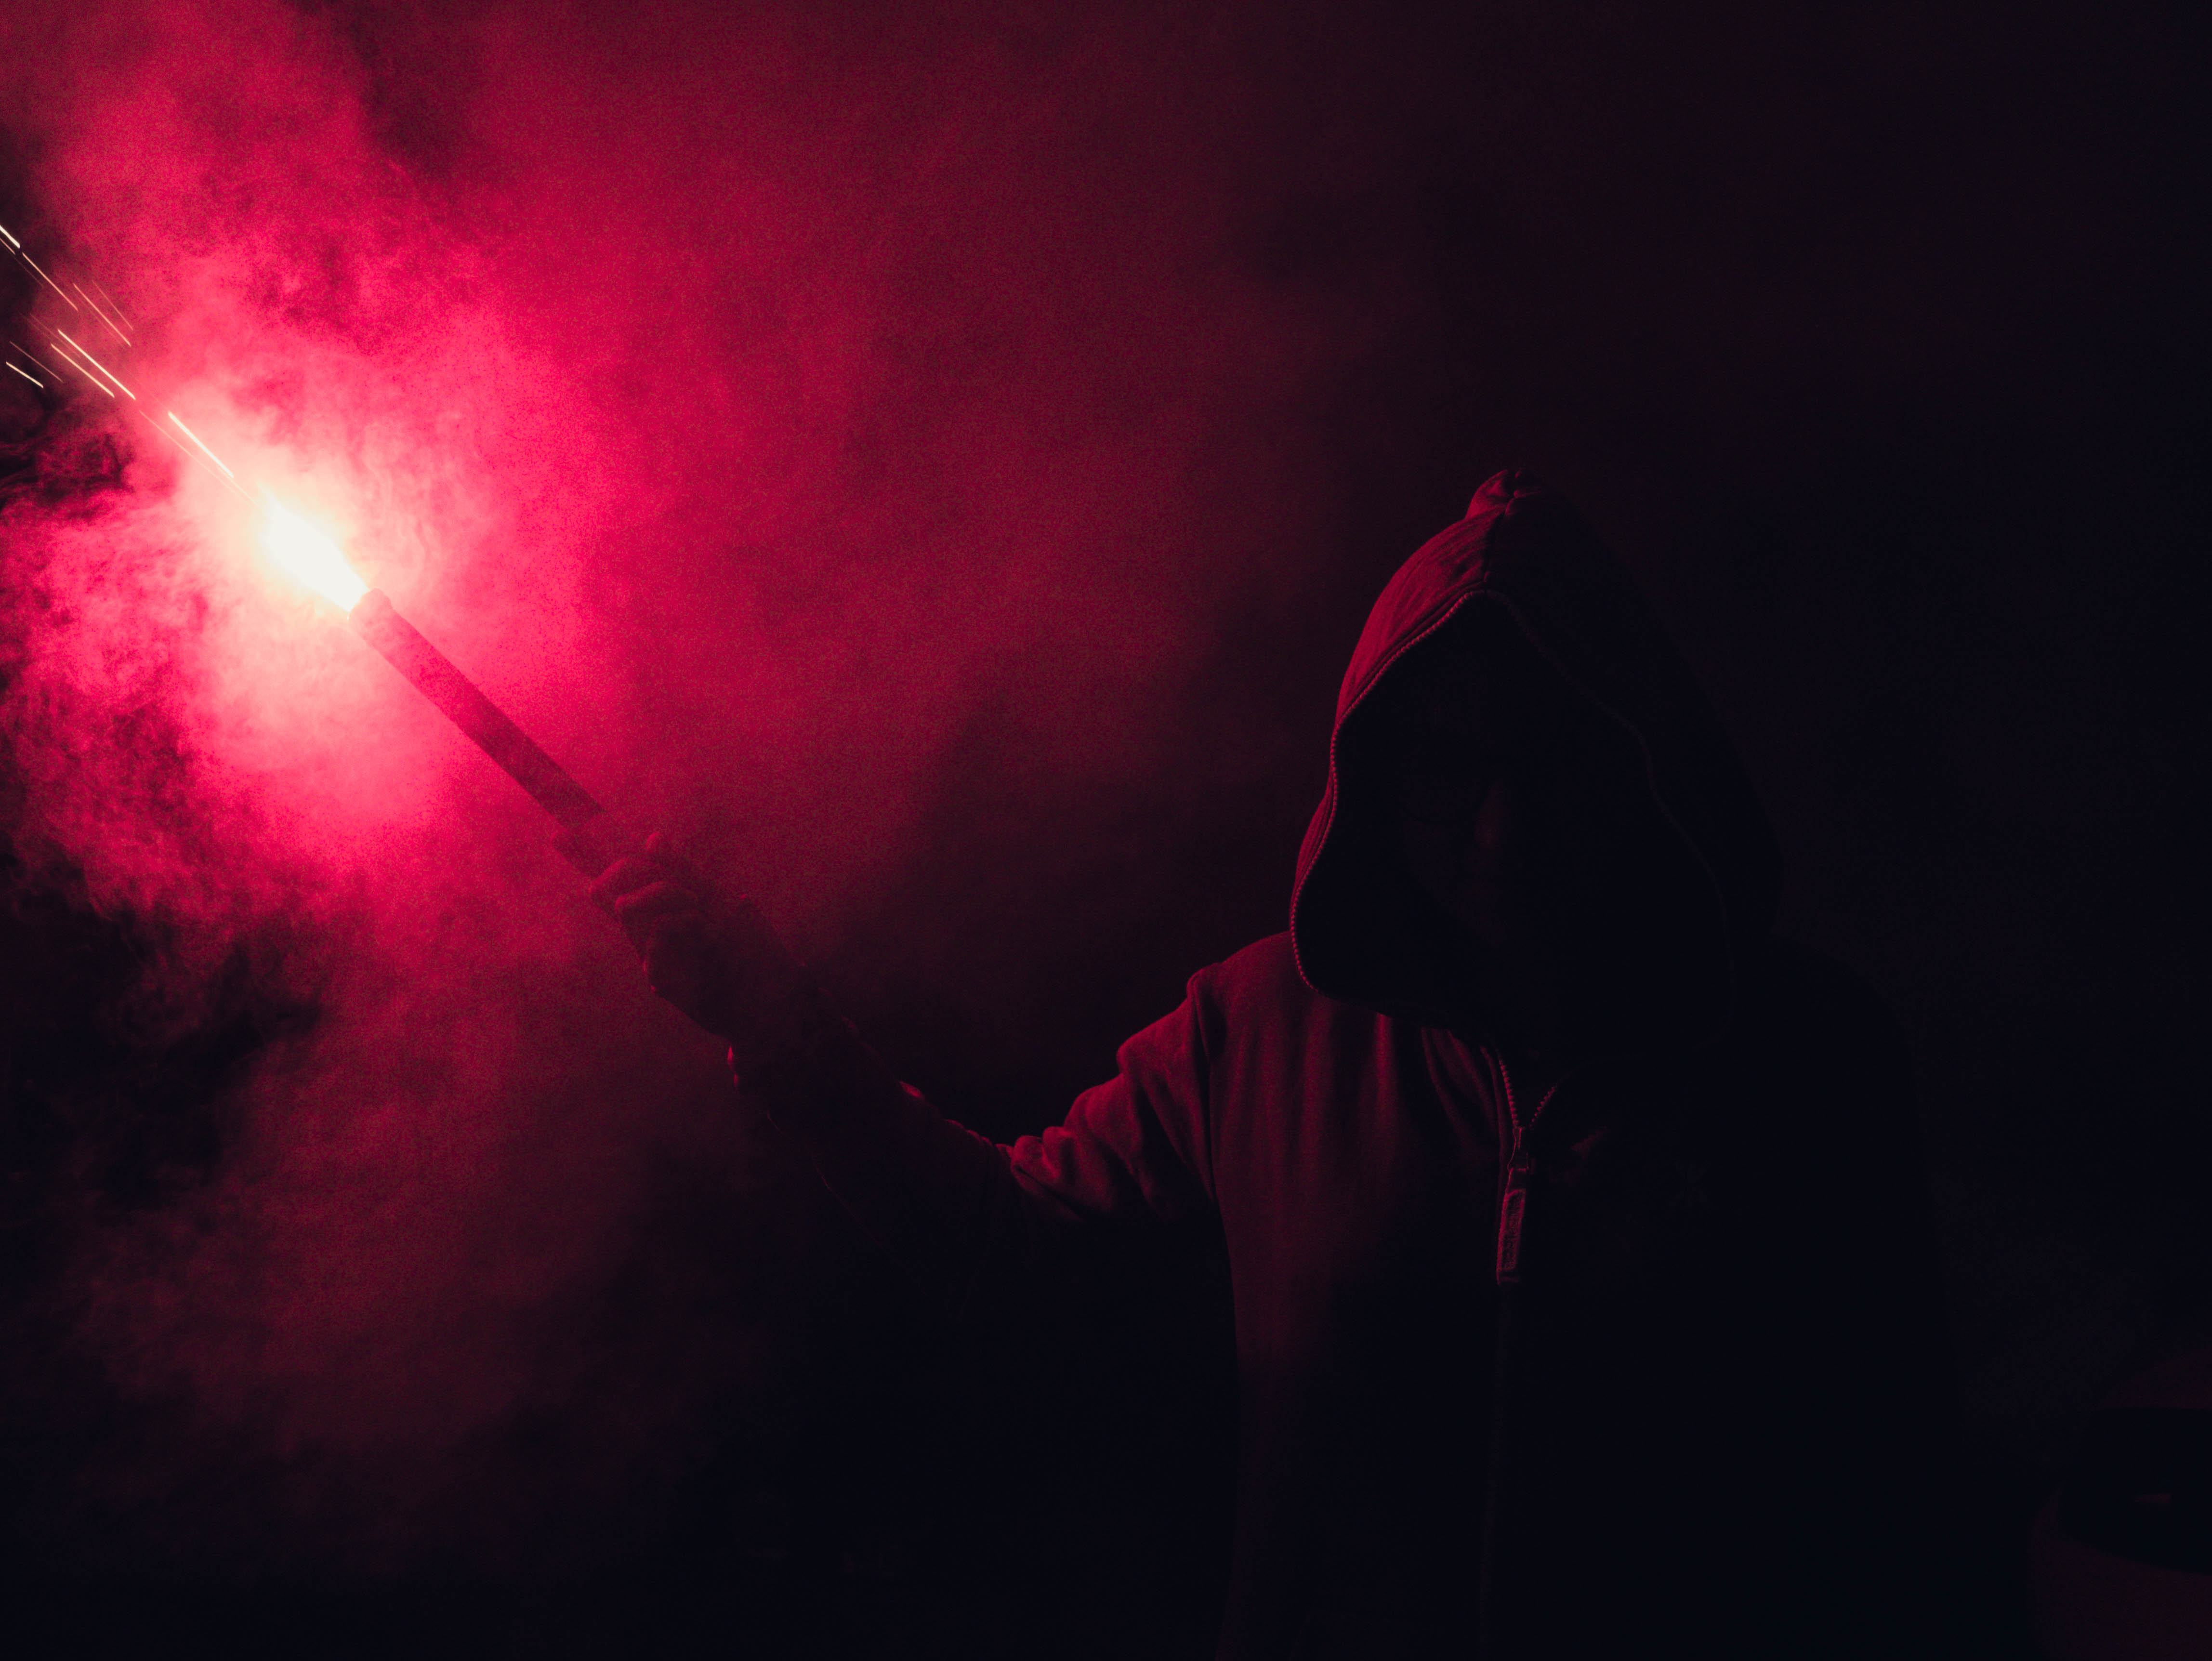 Night View Hd Wallpaper Hooded Figure Holding Red Flare 183 Free Stock Photo